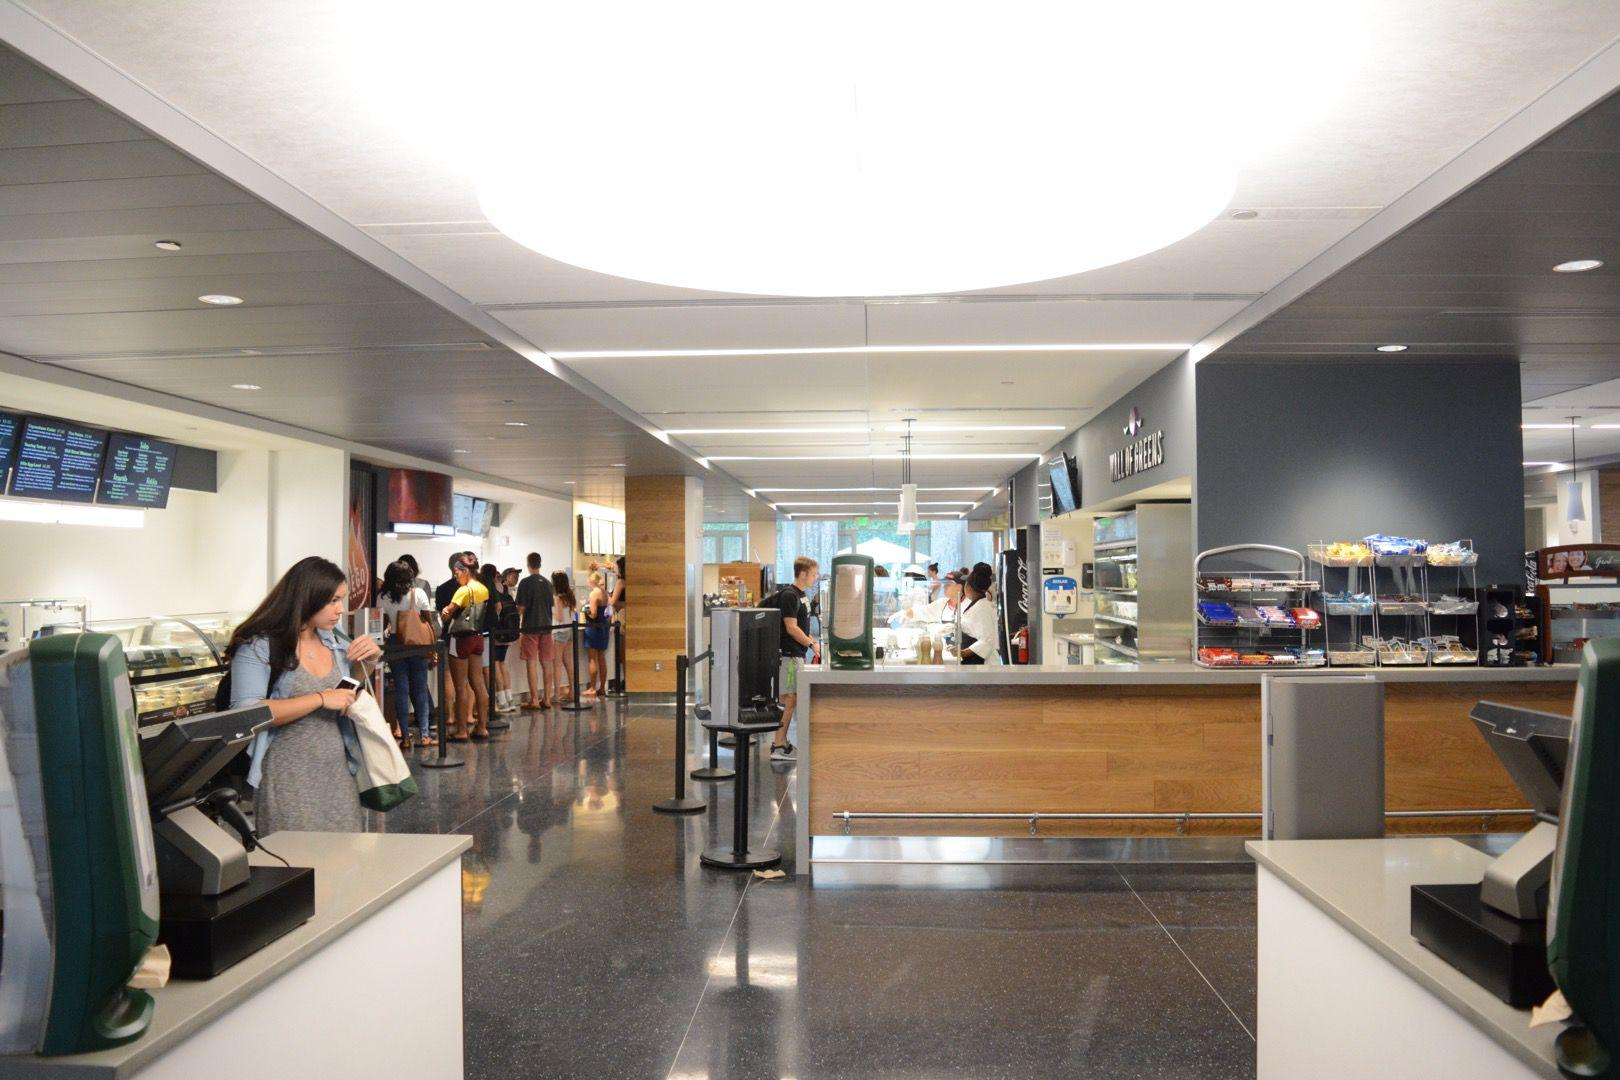 The new food court in the Lavin-Bernick Center for University Life features some options from the old restaurants and some healthy replacements.